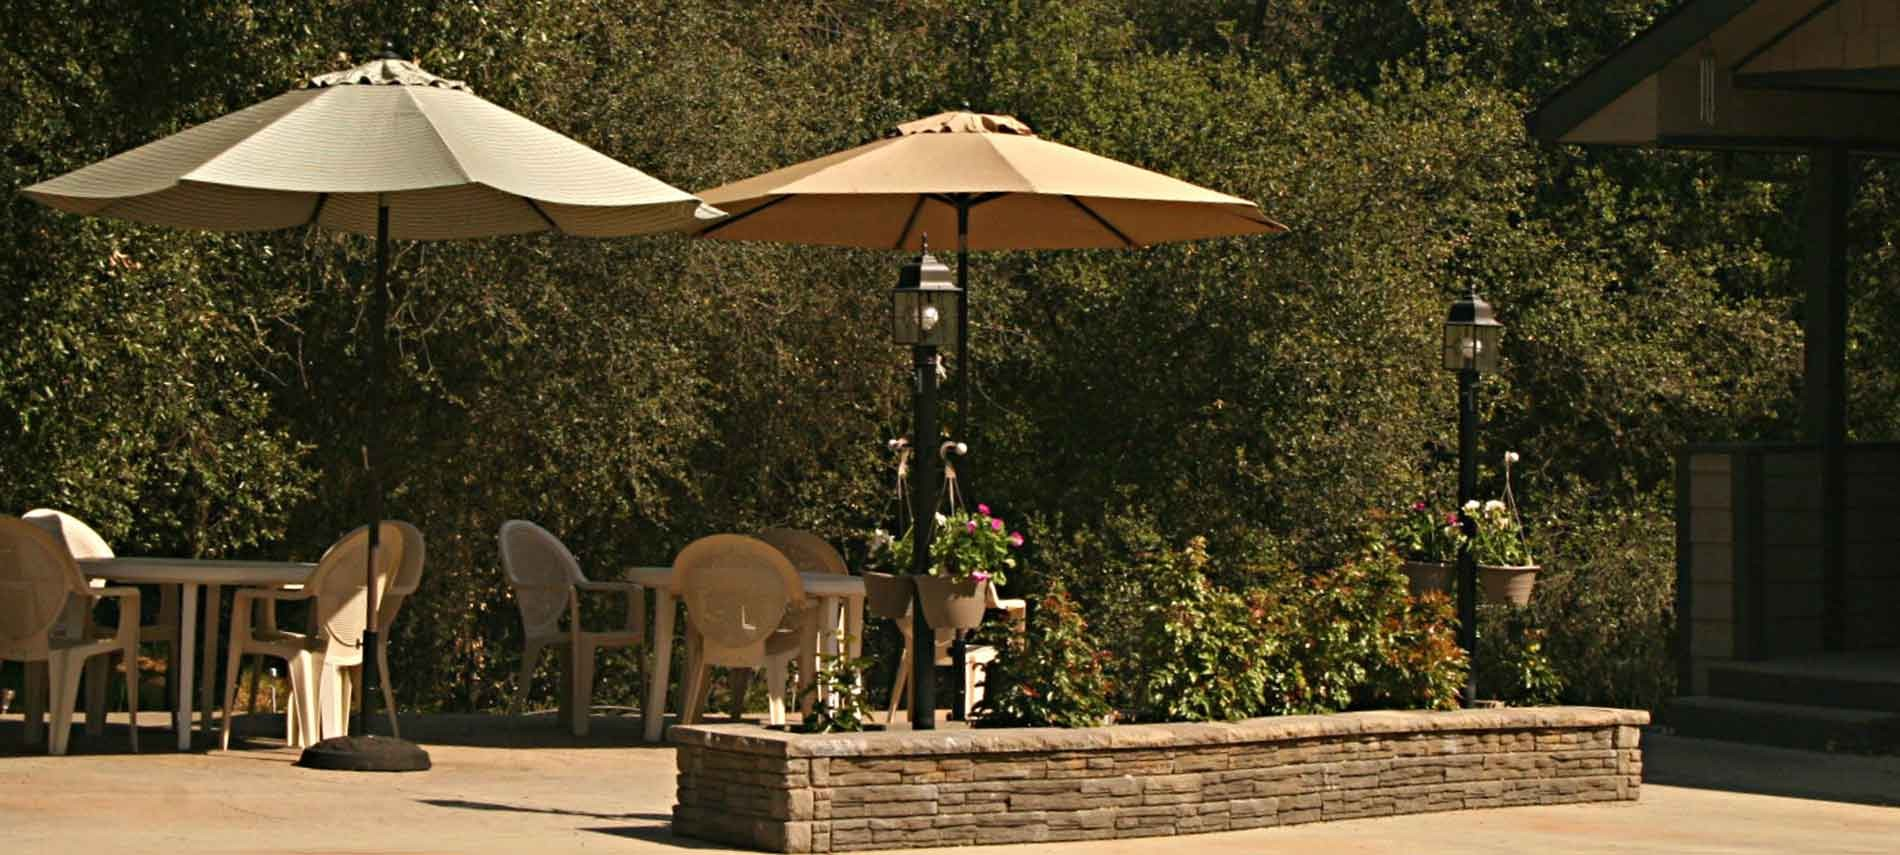 Patio with tables & umbrellas with the woods in the background